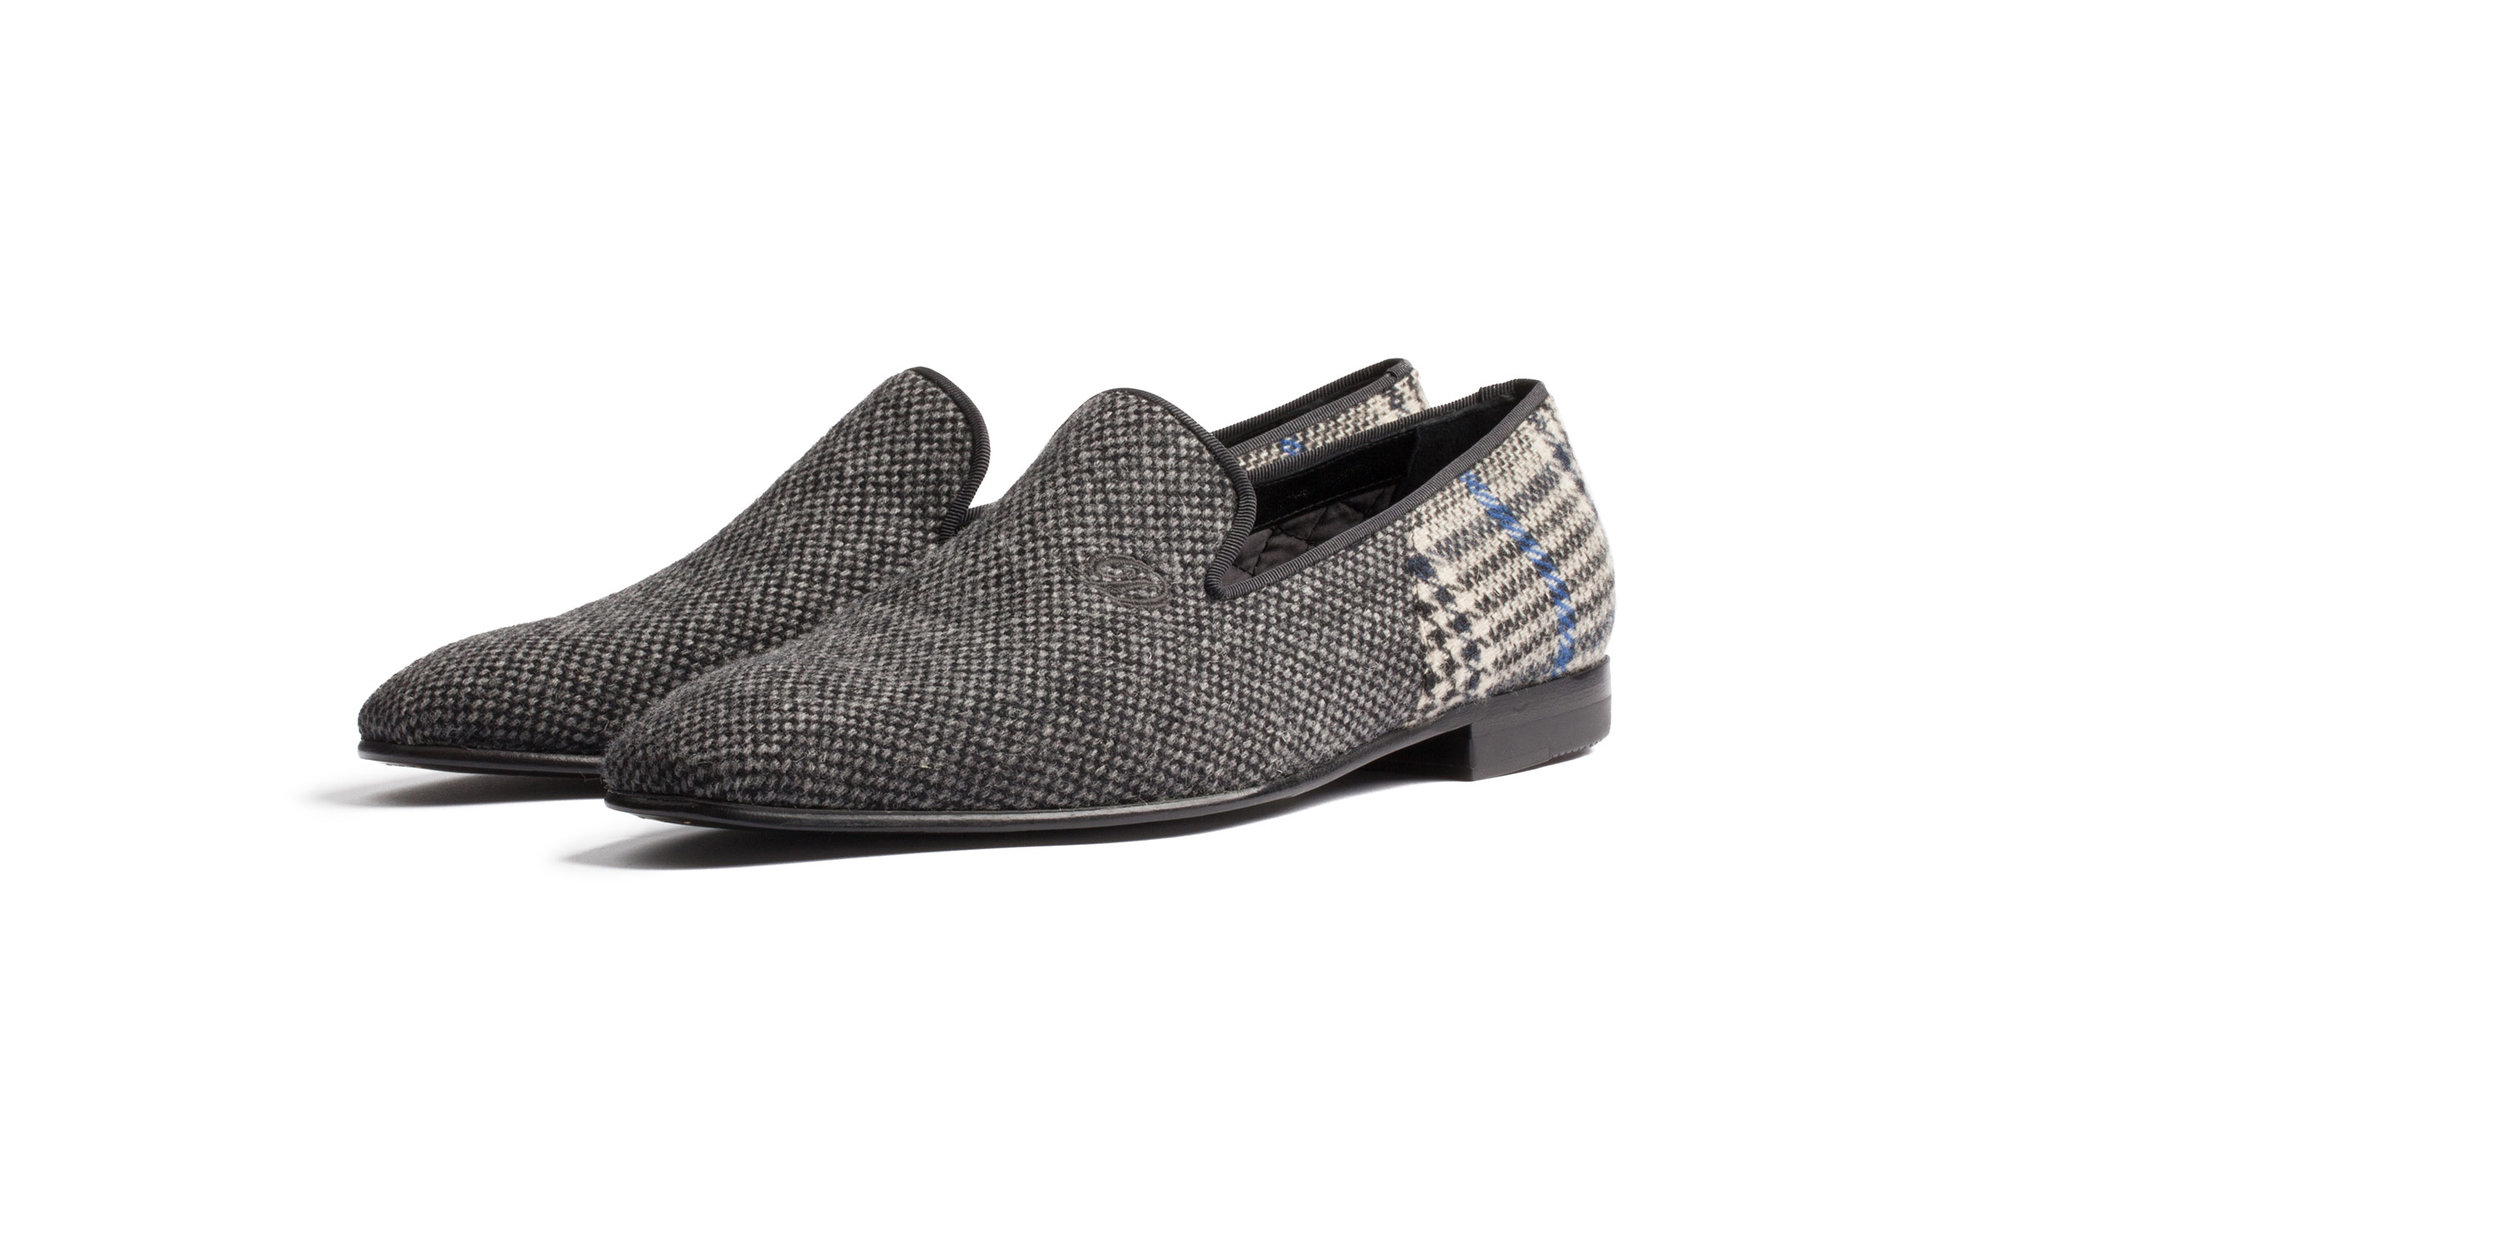 Donhall & Bell Slipper Shoes